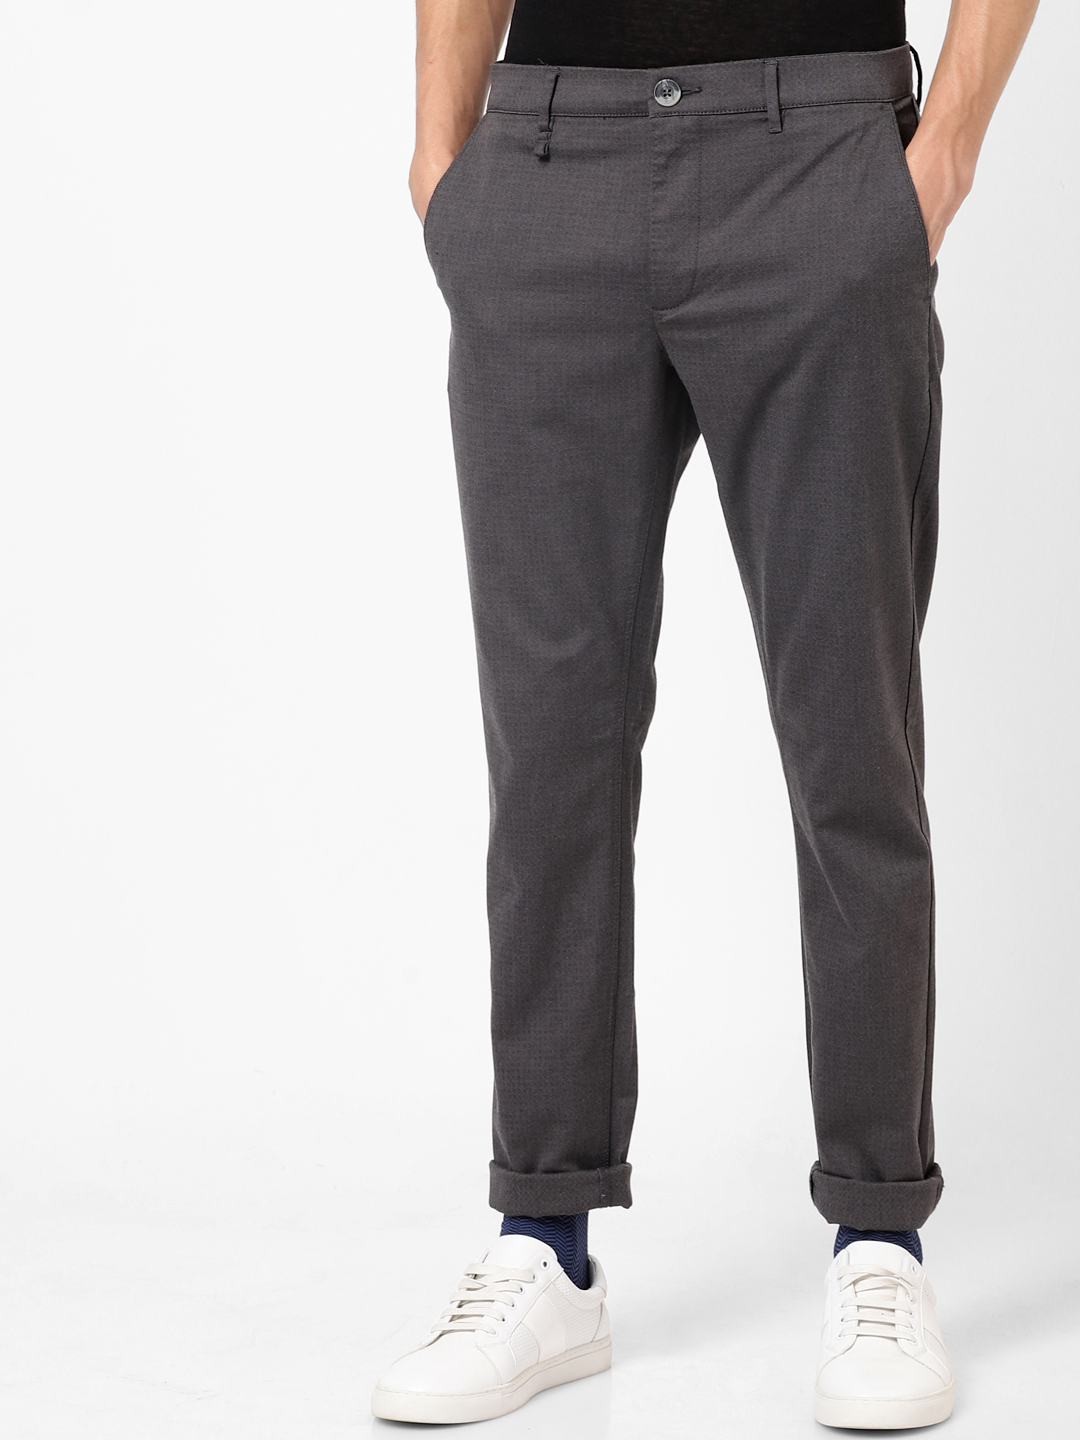 celio   Skinny Fit Charcoal Trouser